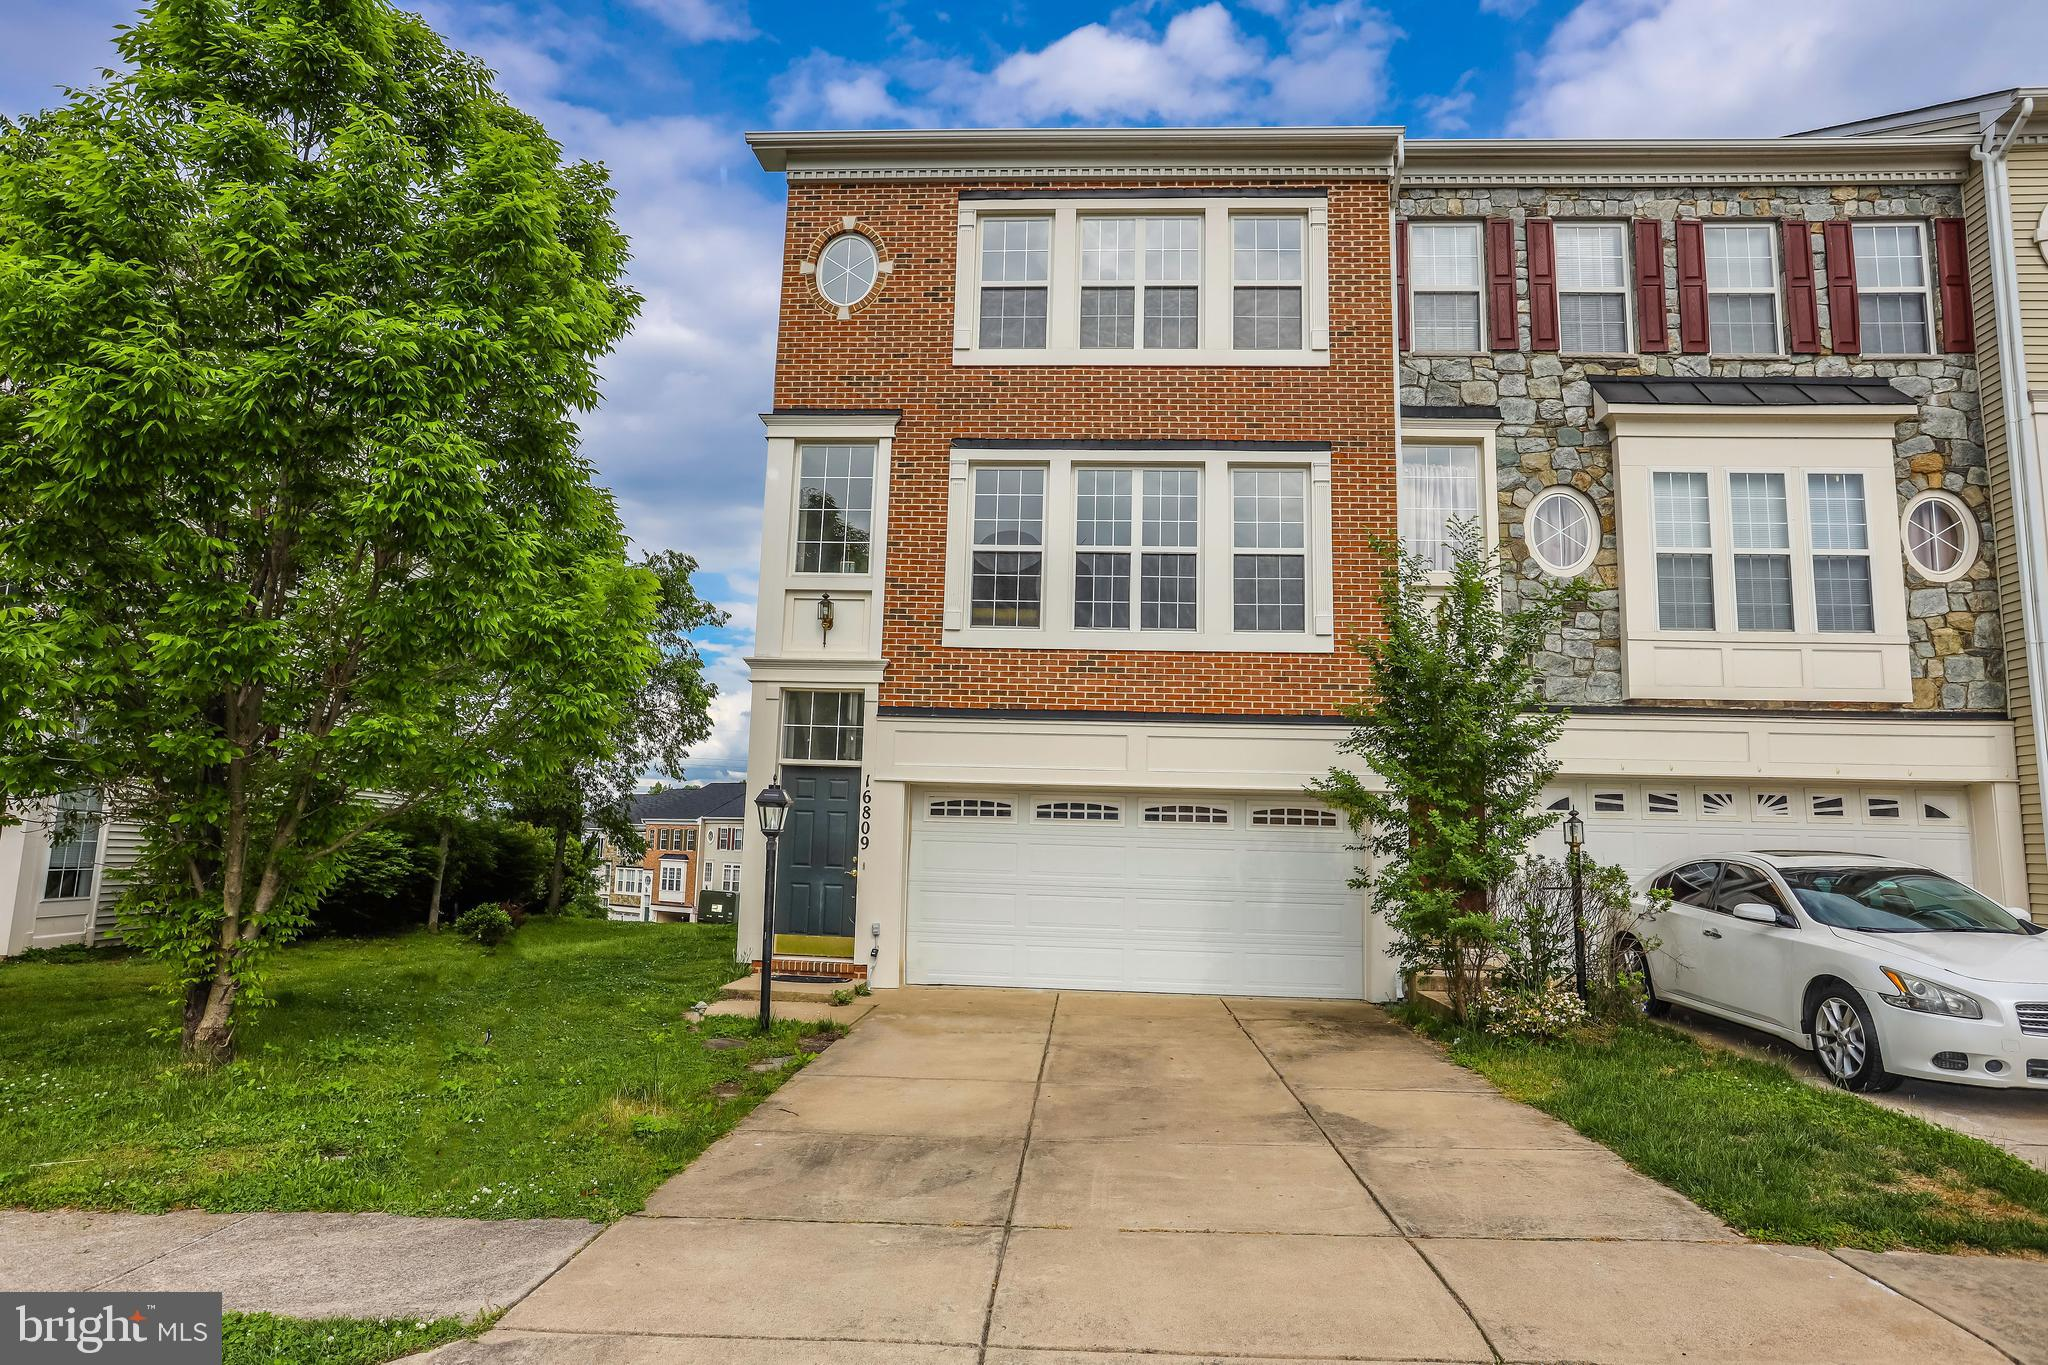 Open house 5/12/19 from 1PM to 4PM ~ WILL NOT LAST LONG! Spectacular end unit town home Freshly painted end-unit townhouse with 2 car garages. New carpeting on the third-floor bedroom level, and hardwoods on the main level. Hardwood flooring have been newly refinished. Open floor plan! This home radiates with natural light. Open foyer, that ascends to an open dining room and living room. The kitchen has stainless steel appliances, with granite countertops, and double atrium doors that are ready for a deck. Enormous basement space and walk out level basement.